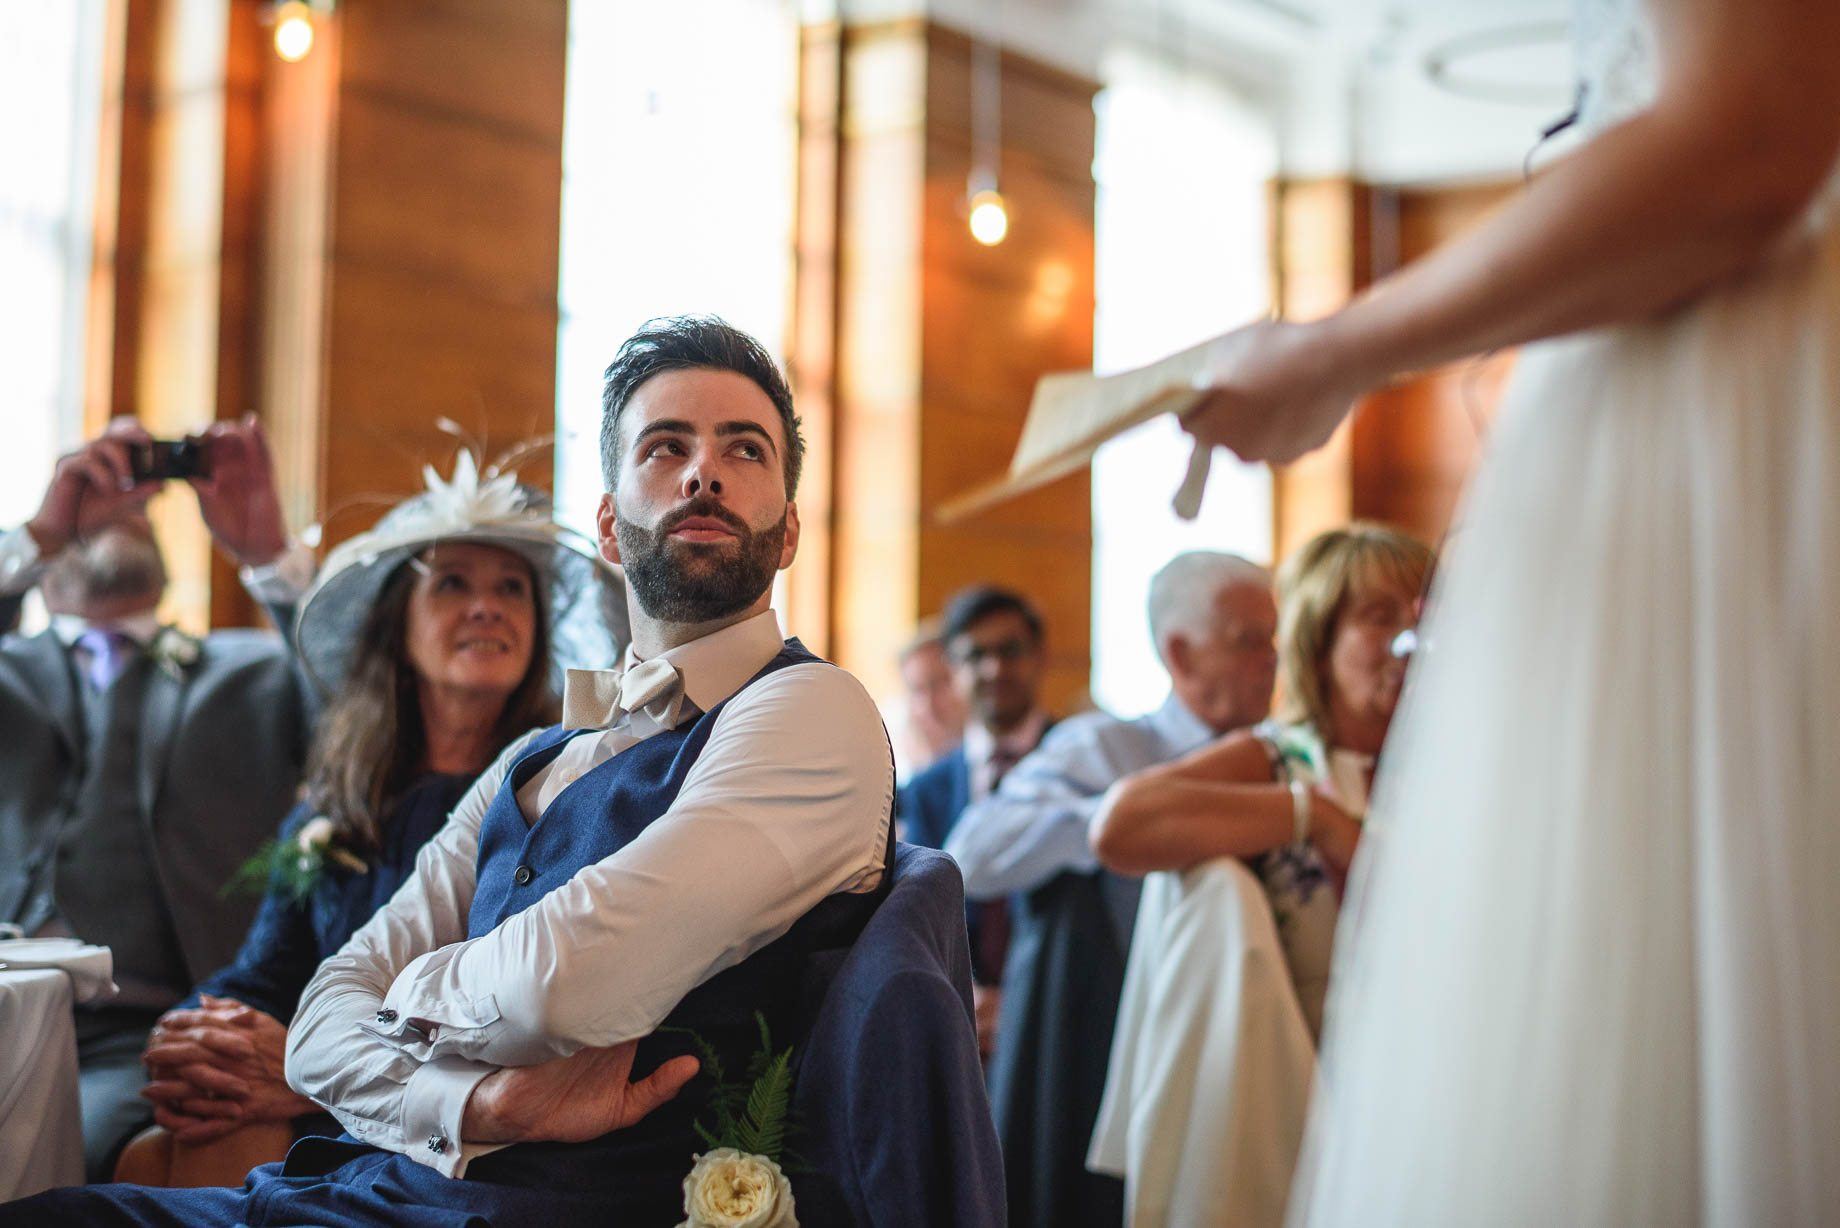 London Wedding Photography - Guy Collier Photography - LJ + Russell (114 of 155)